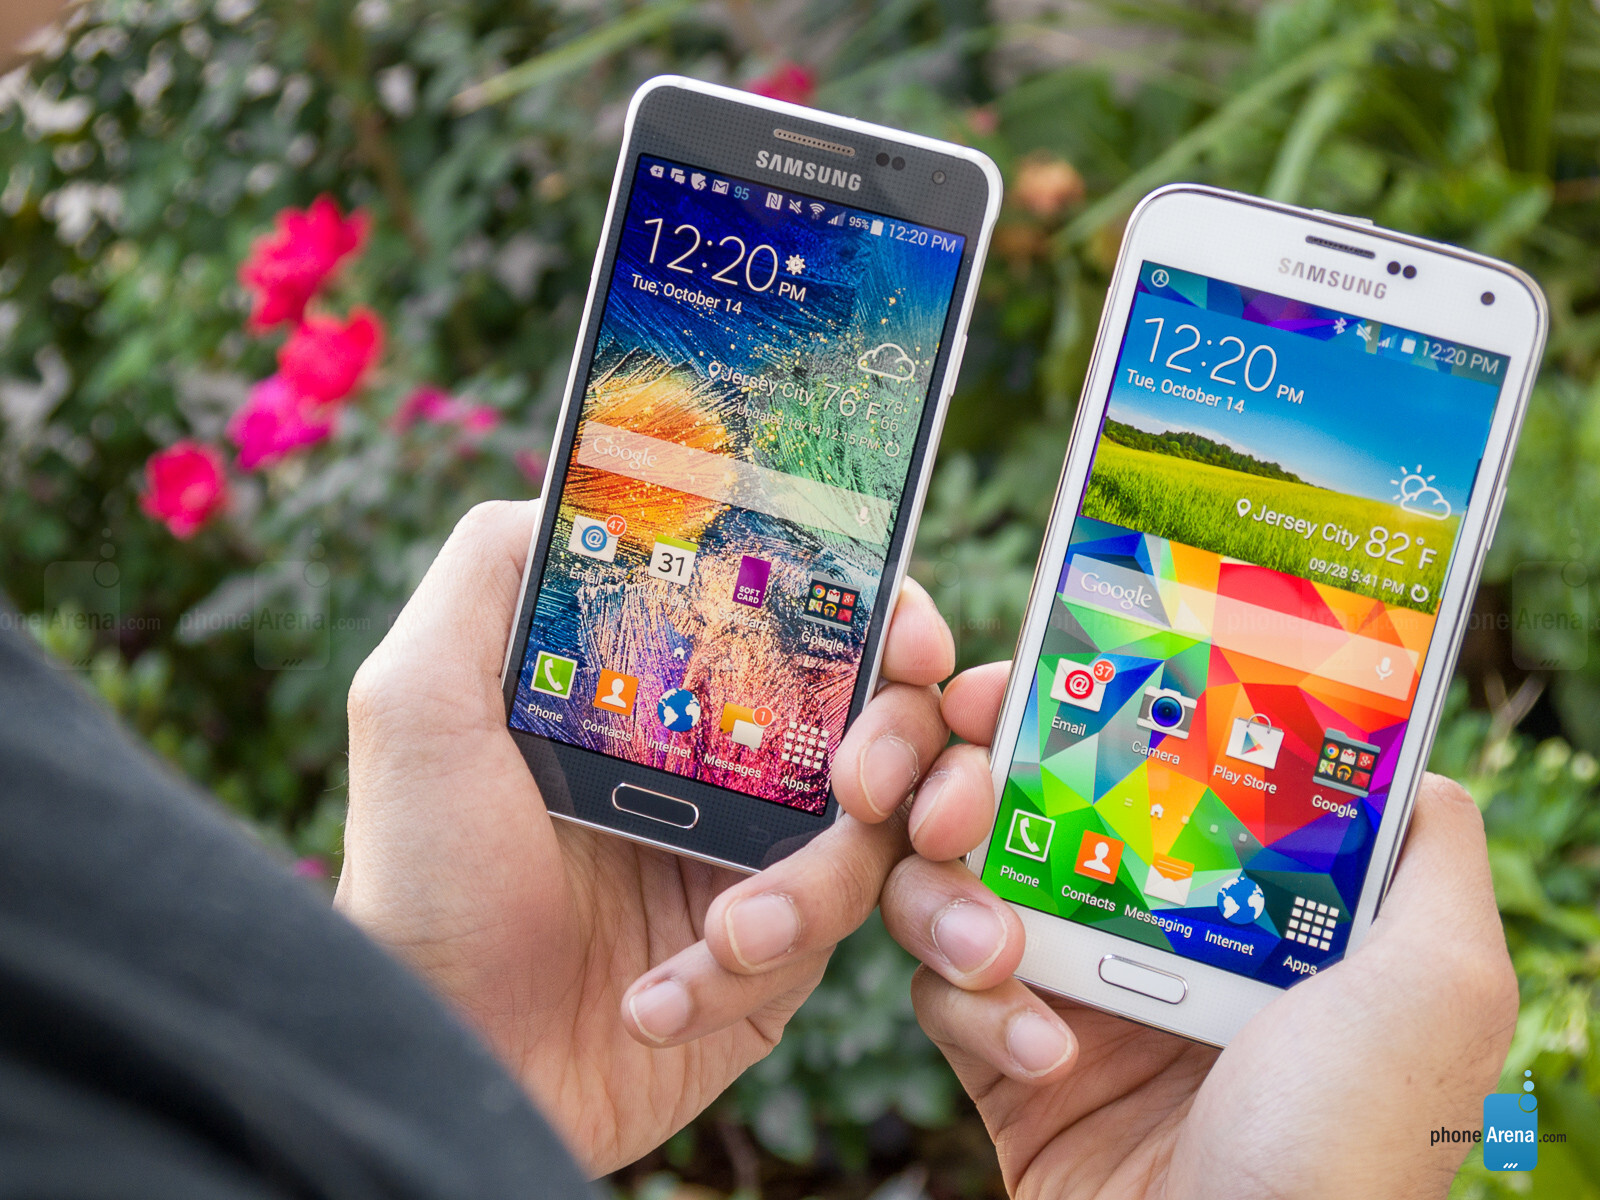 samsung galaxy s5 white vs black. samsung galaxy s5 white vs black